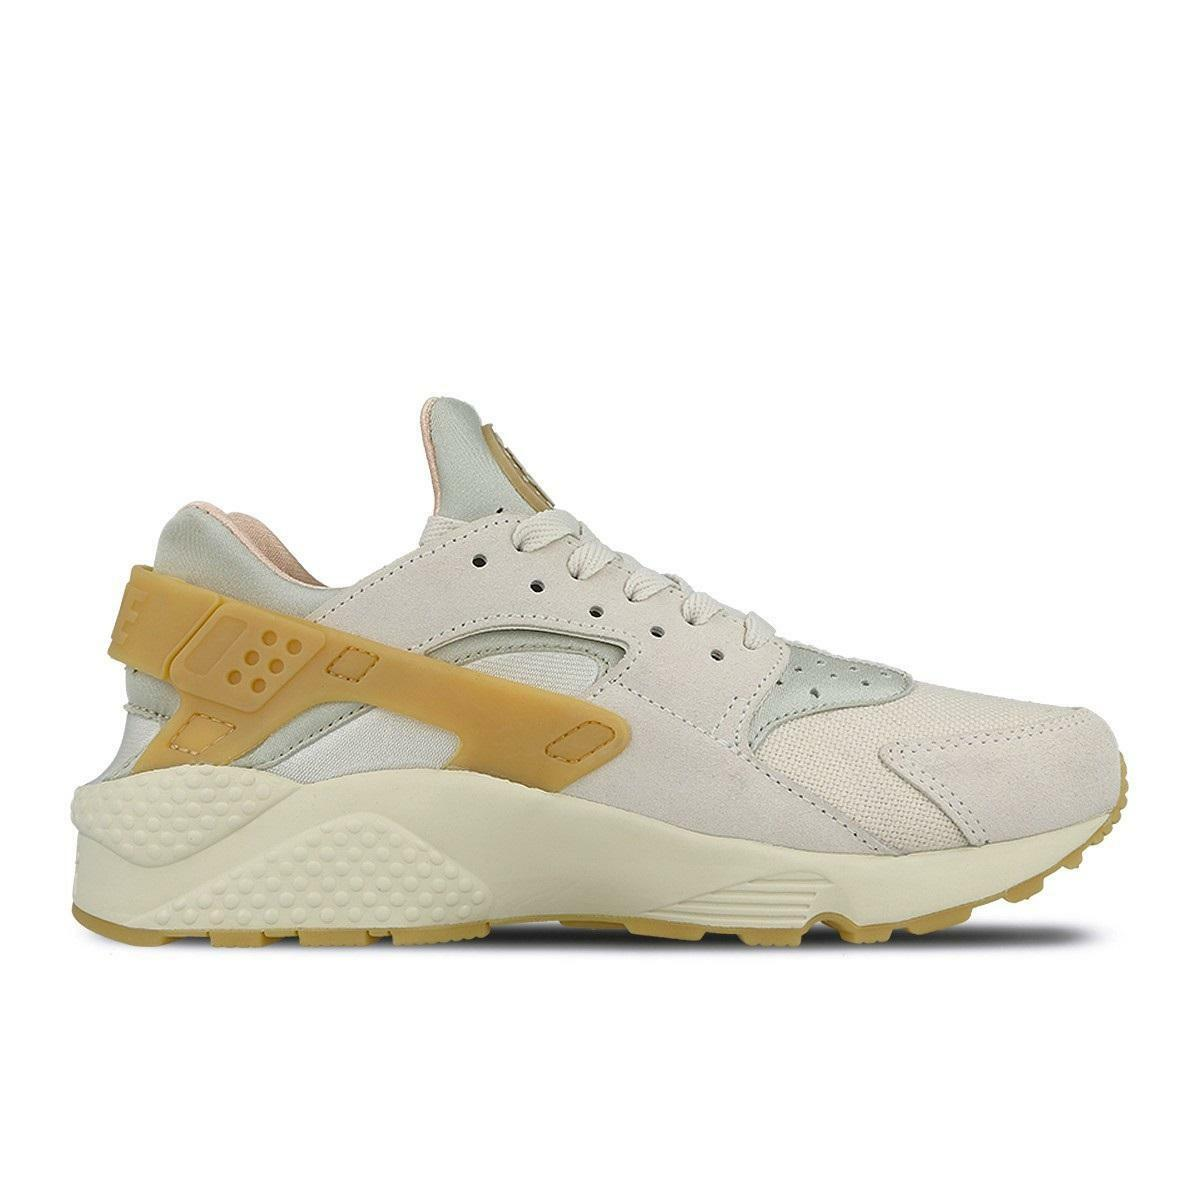 Mens NIKE AIR HUARACHE RUN SE Beige Trainers 852628 004